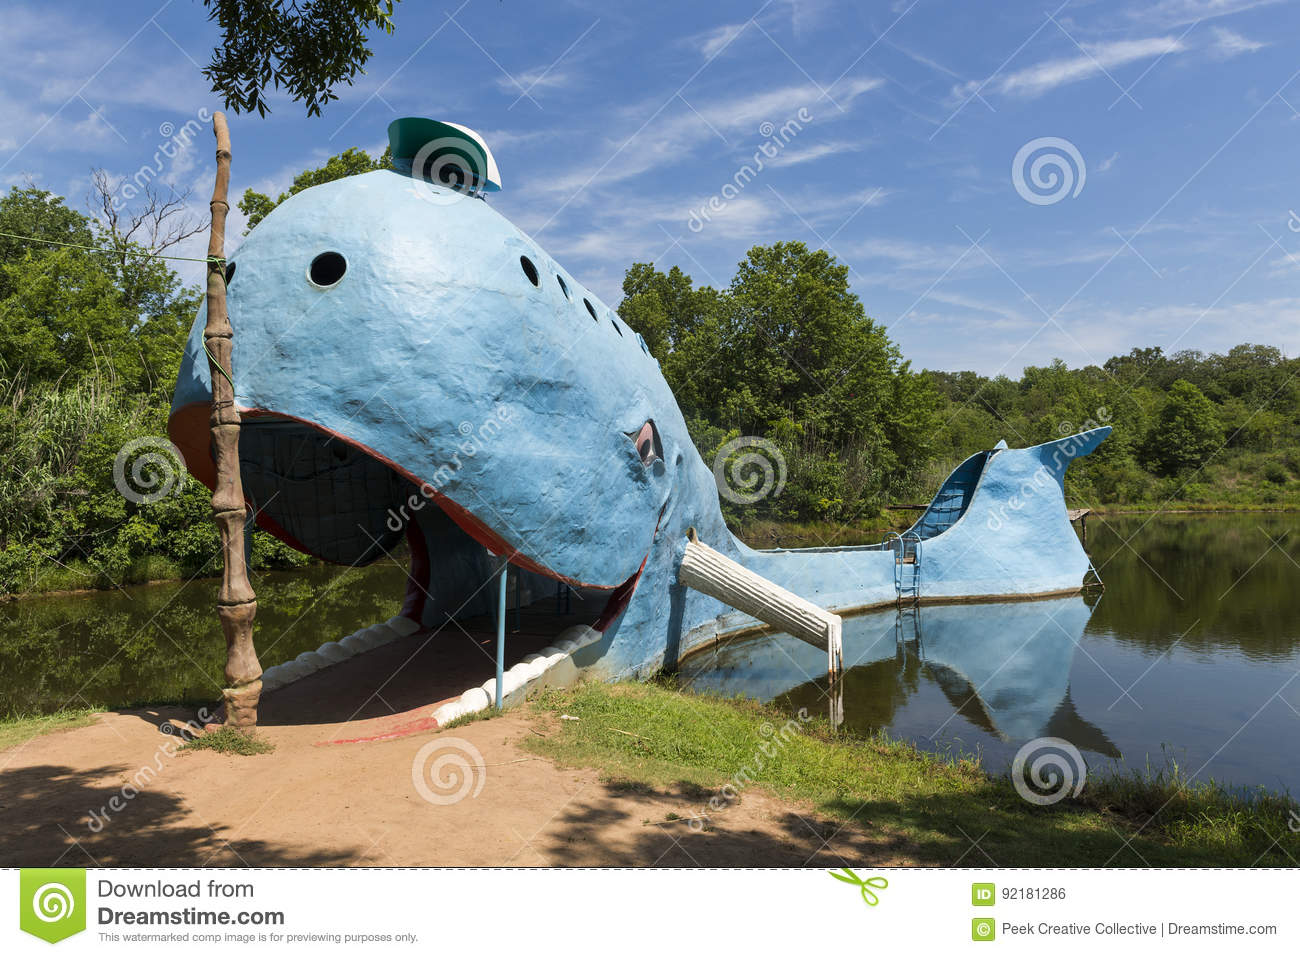 View of the famous road side attractions Blue Whale of Catoosa along the historic Route 66 in the State of Oklahoma, USA.